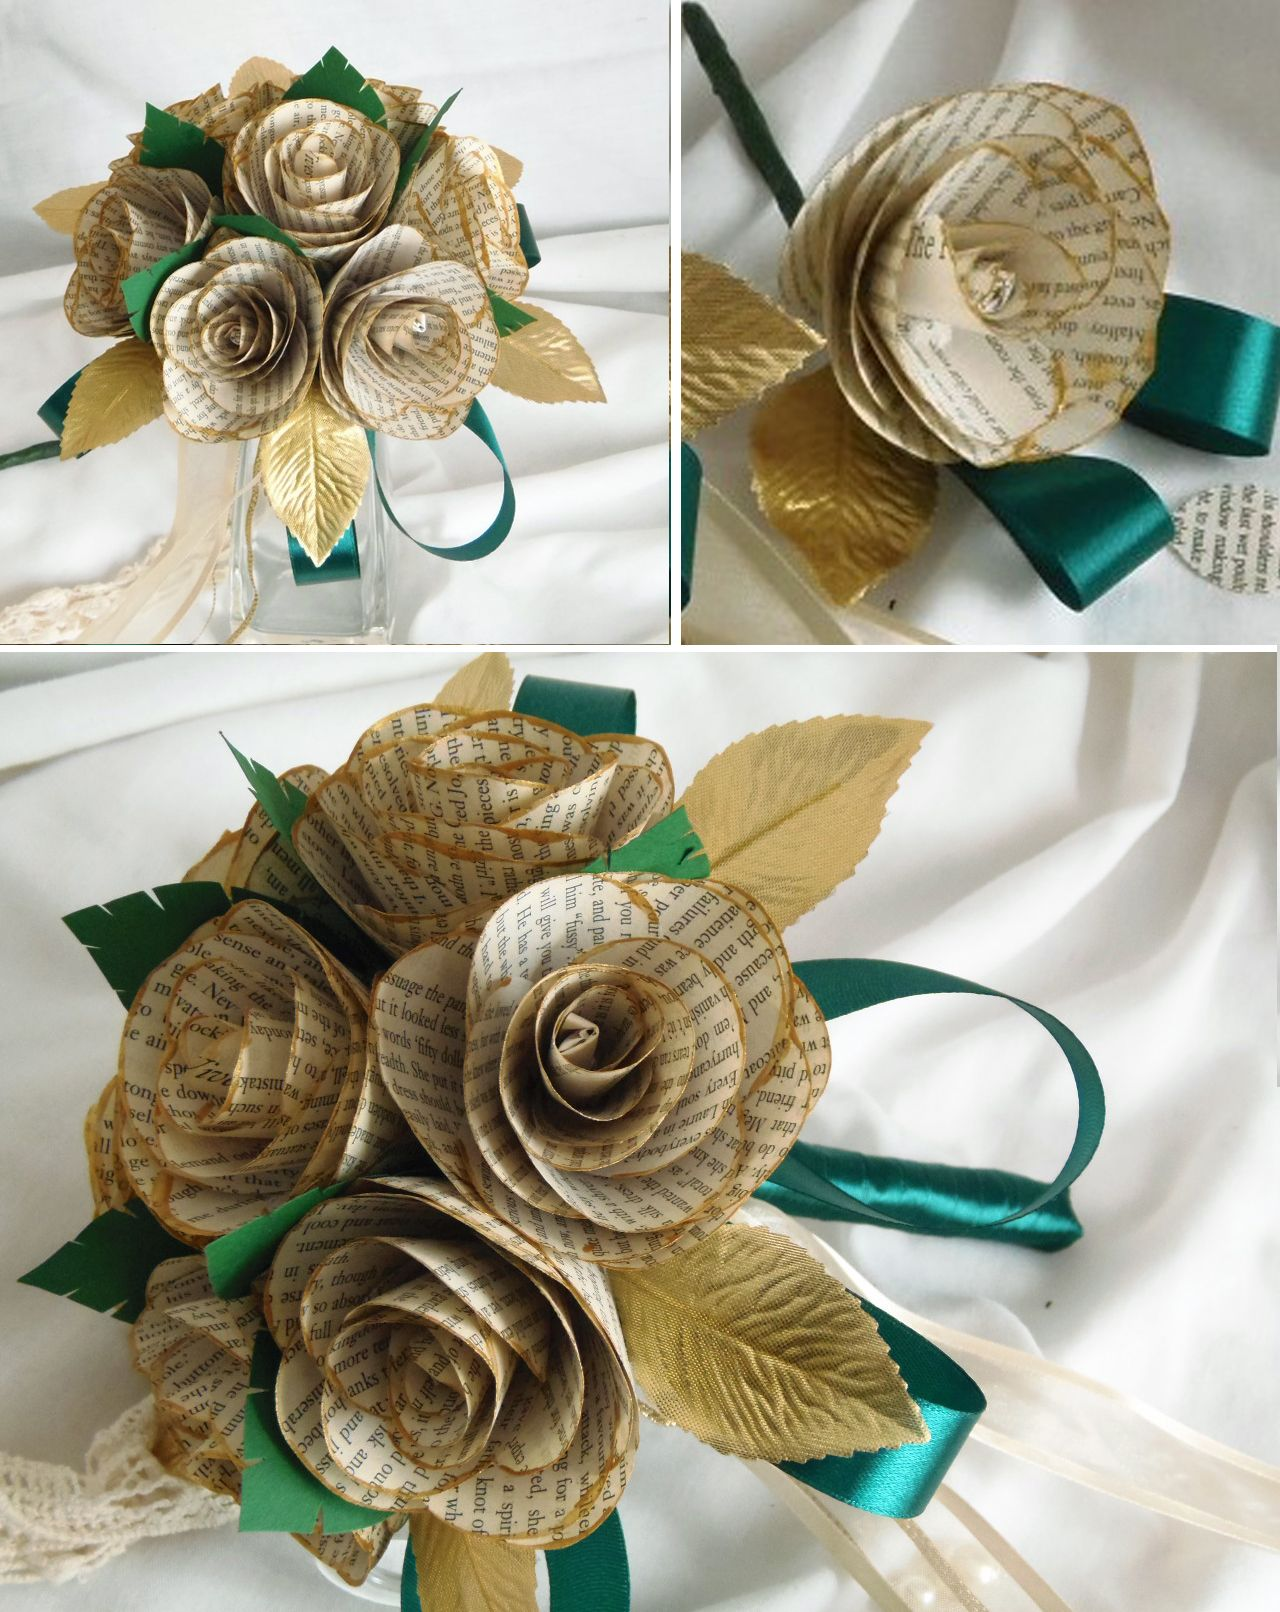 Wedding decorations pics october 2018 Green u Gold Painted Book Page Bride Bouquet u Buttonhole  Book